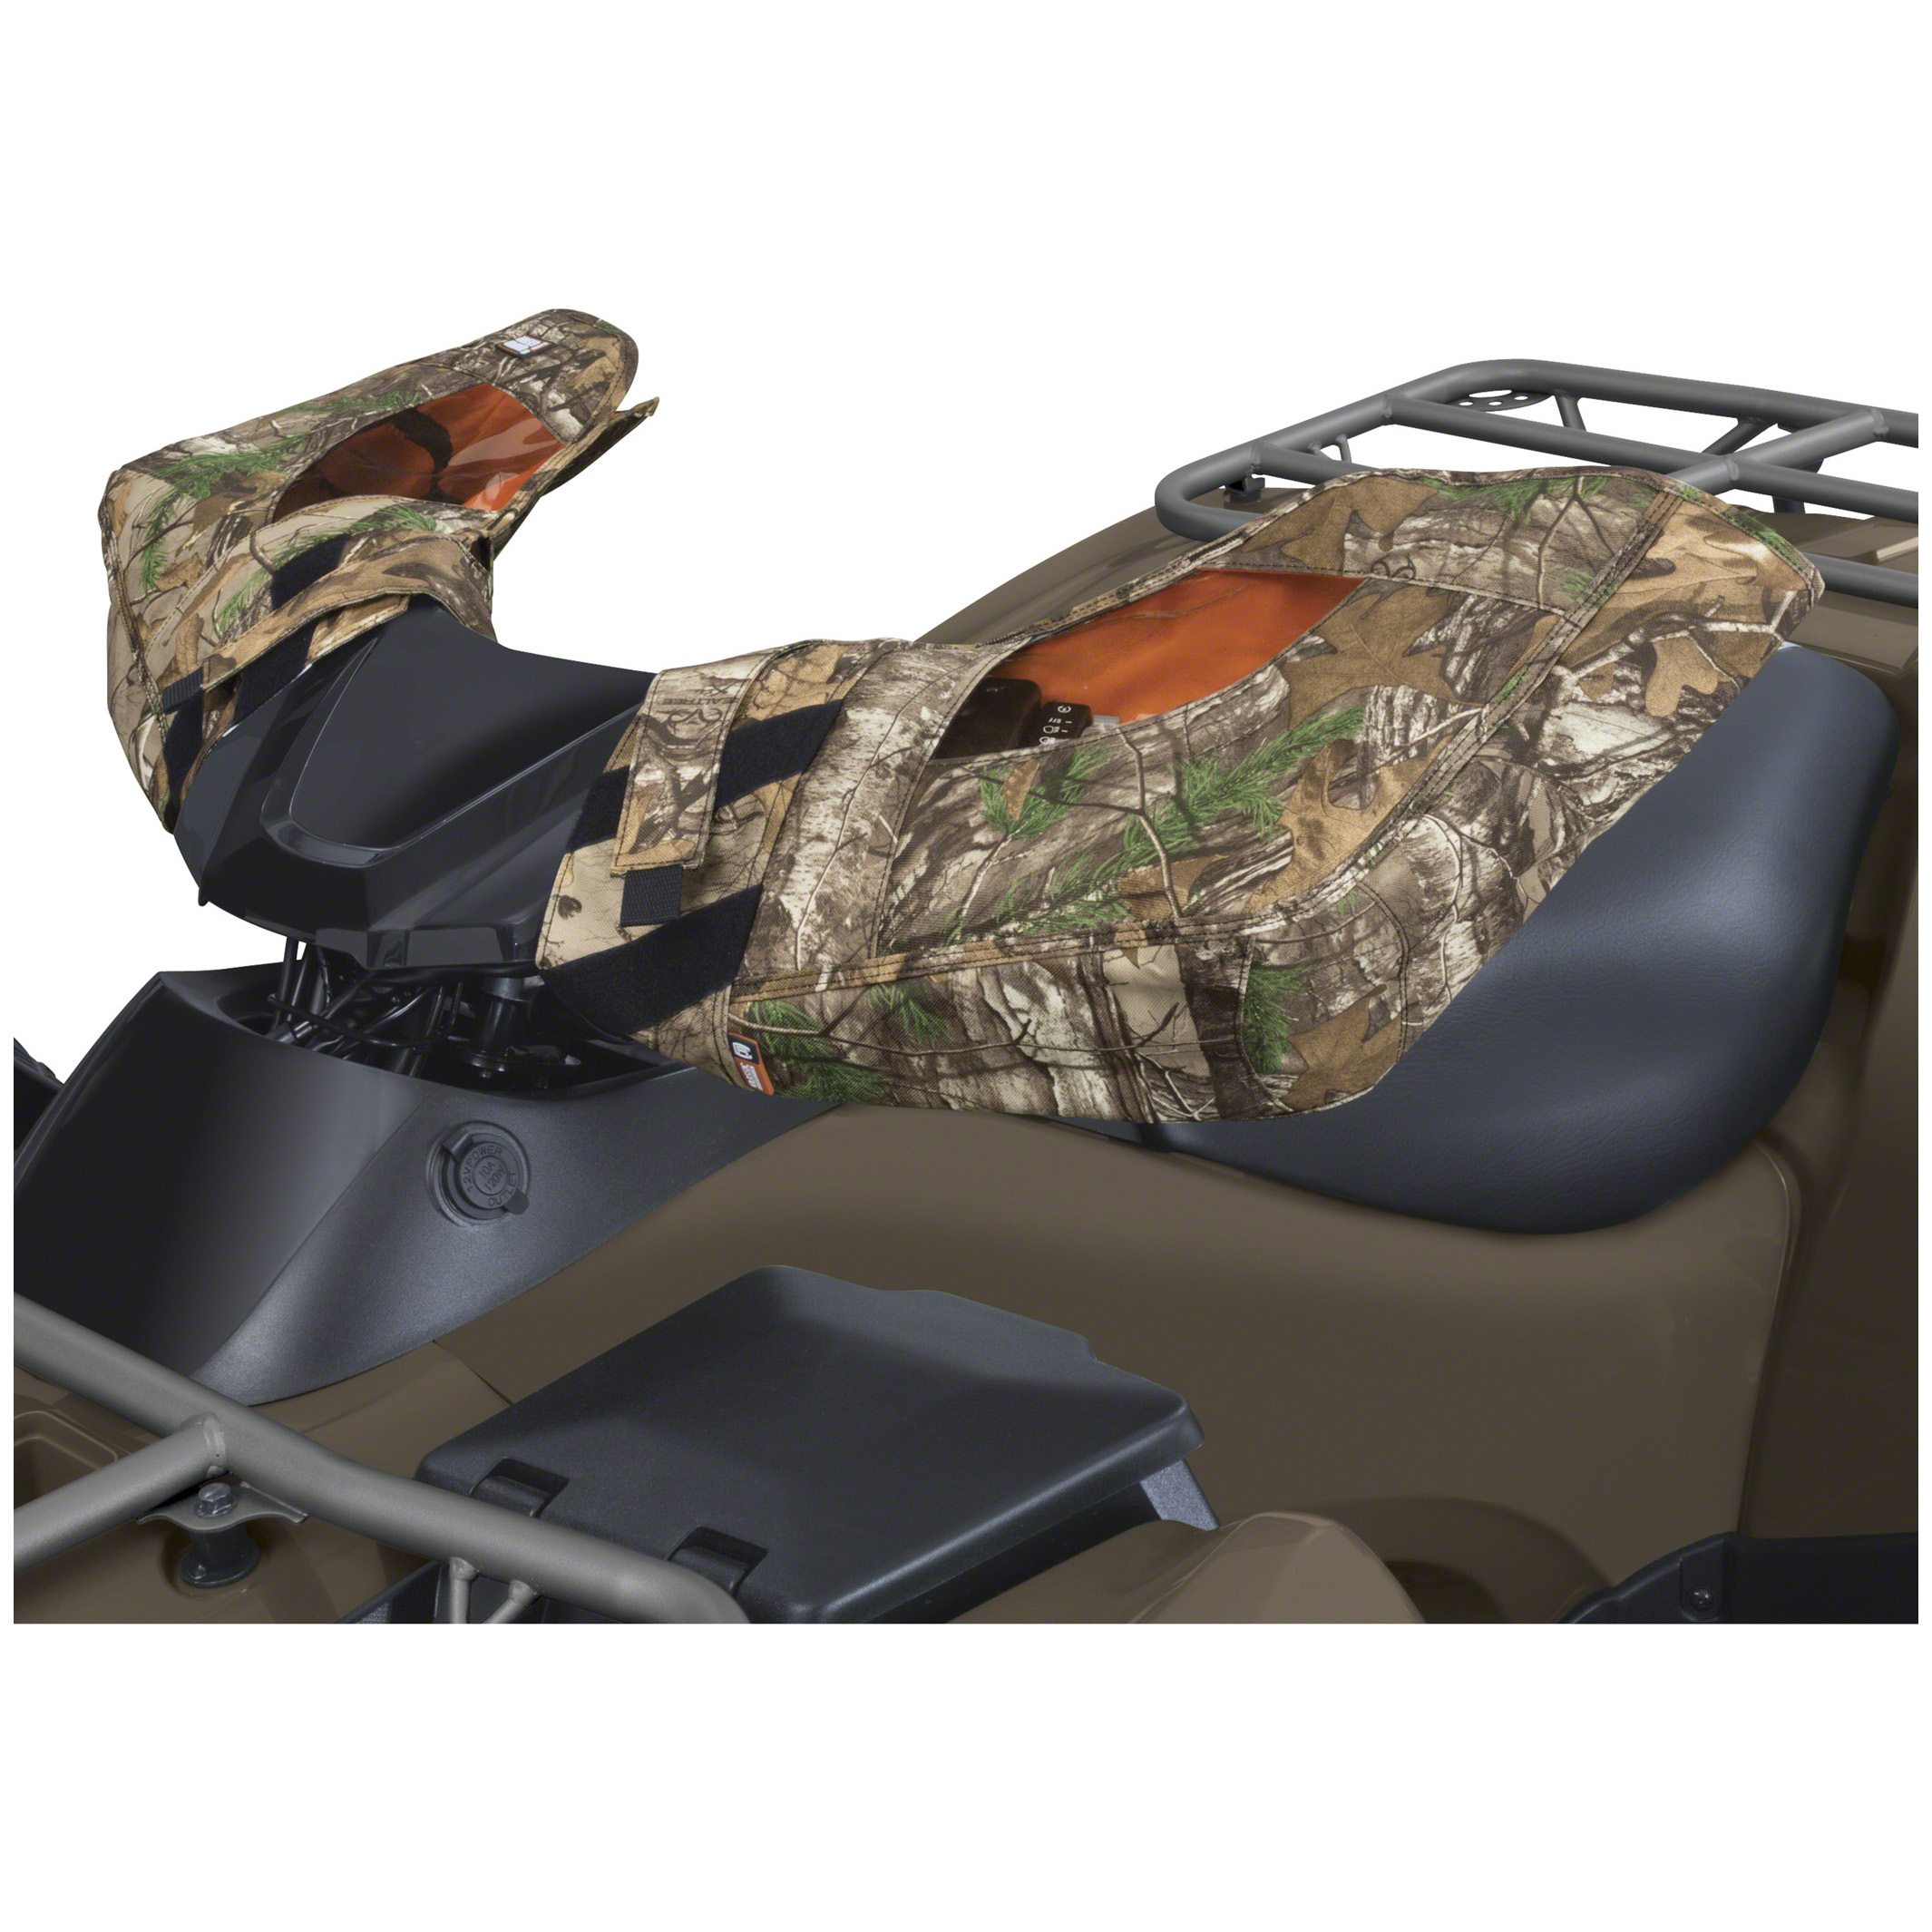 Classic Accessories Camo ATV Handlebar Mitts keep your hands warm, dry and protected. Add comfort to you ride in cold or wet weather. These Camo ATV Handlebar Mitts have water-resistant backing and exterior coating for outstanding weather and abrasion protection. They also provide warmth to keep your hands feeling good. They come in Realtree XTRA camo and fit most ATV handlebars. Take a look: Quickly fits ATV handlebars with rip-and-grip attachment Ultra-Clear windows keep controls in sight Interior pockets for heat packs (heat packs not included) Warm and comfortable fleece lining. - $64.99